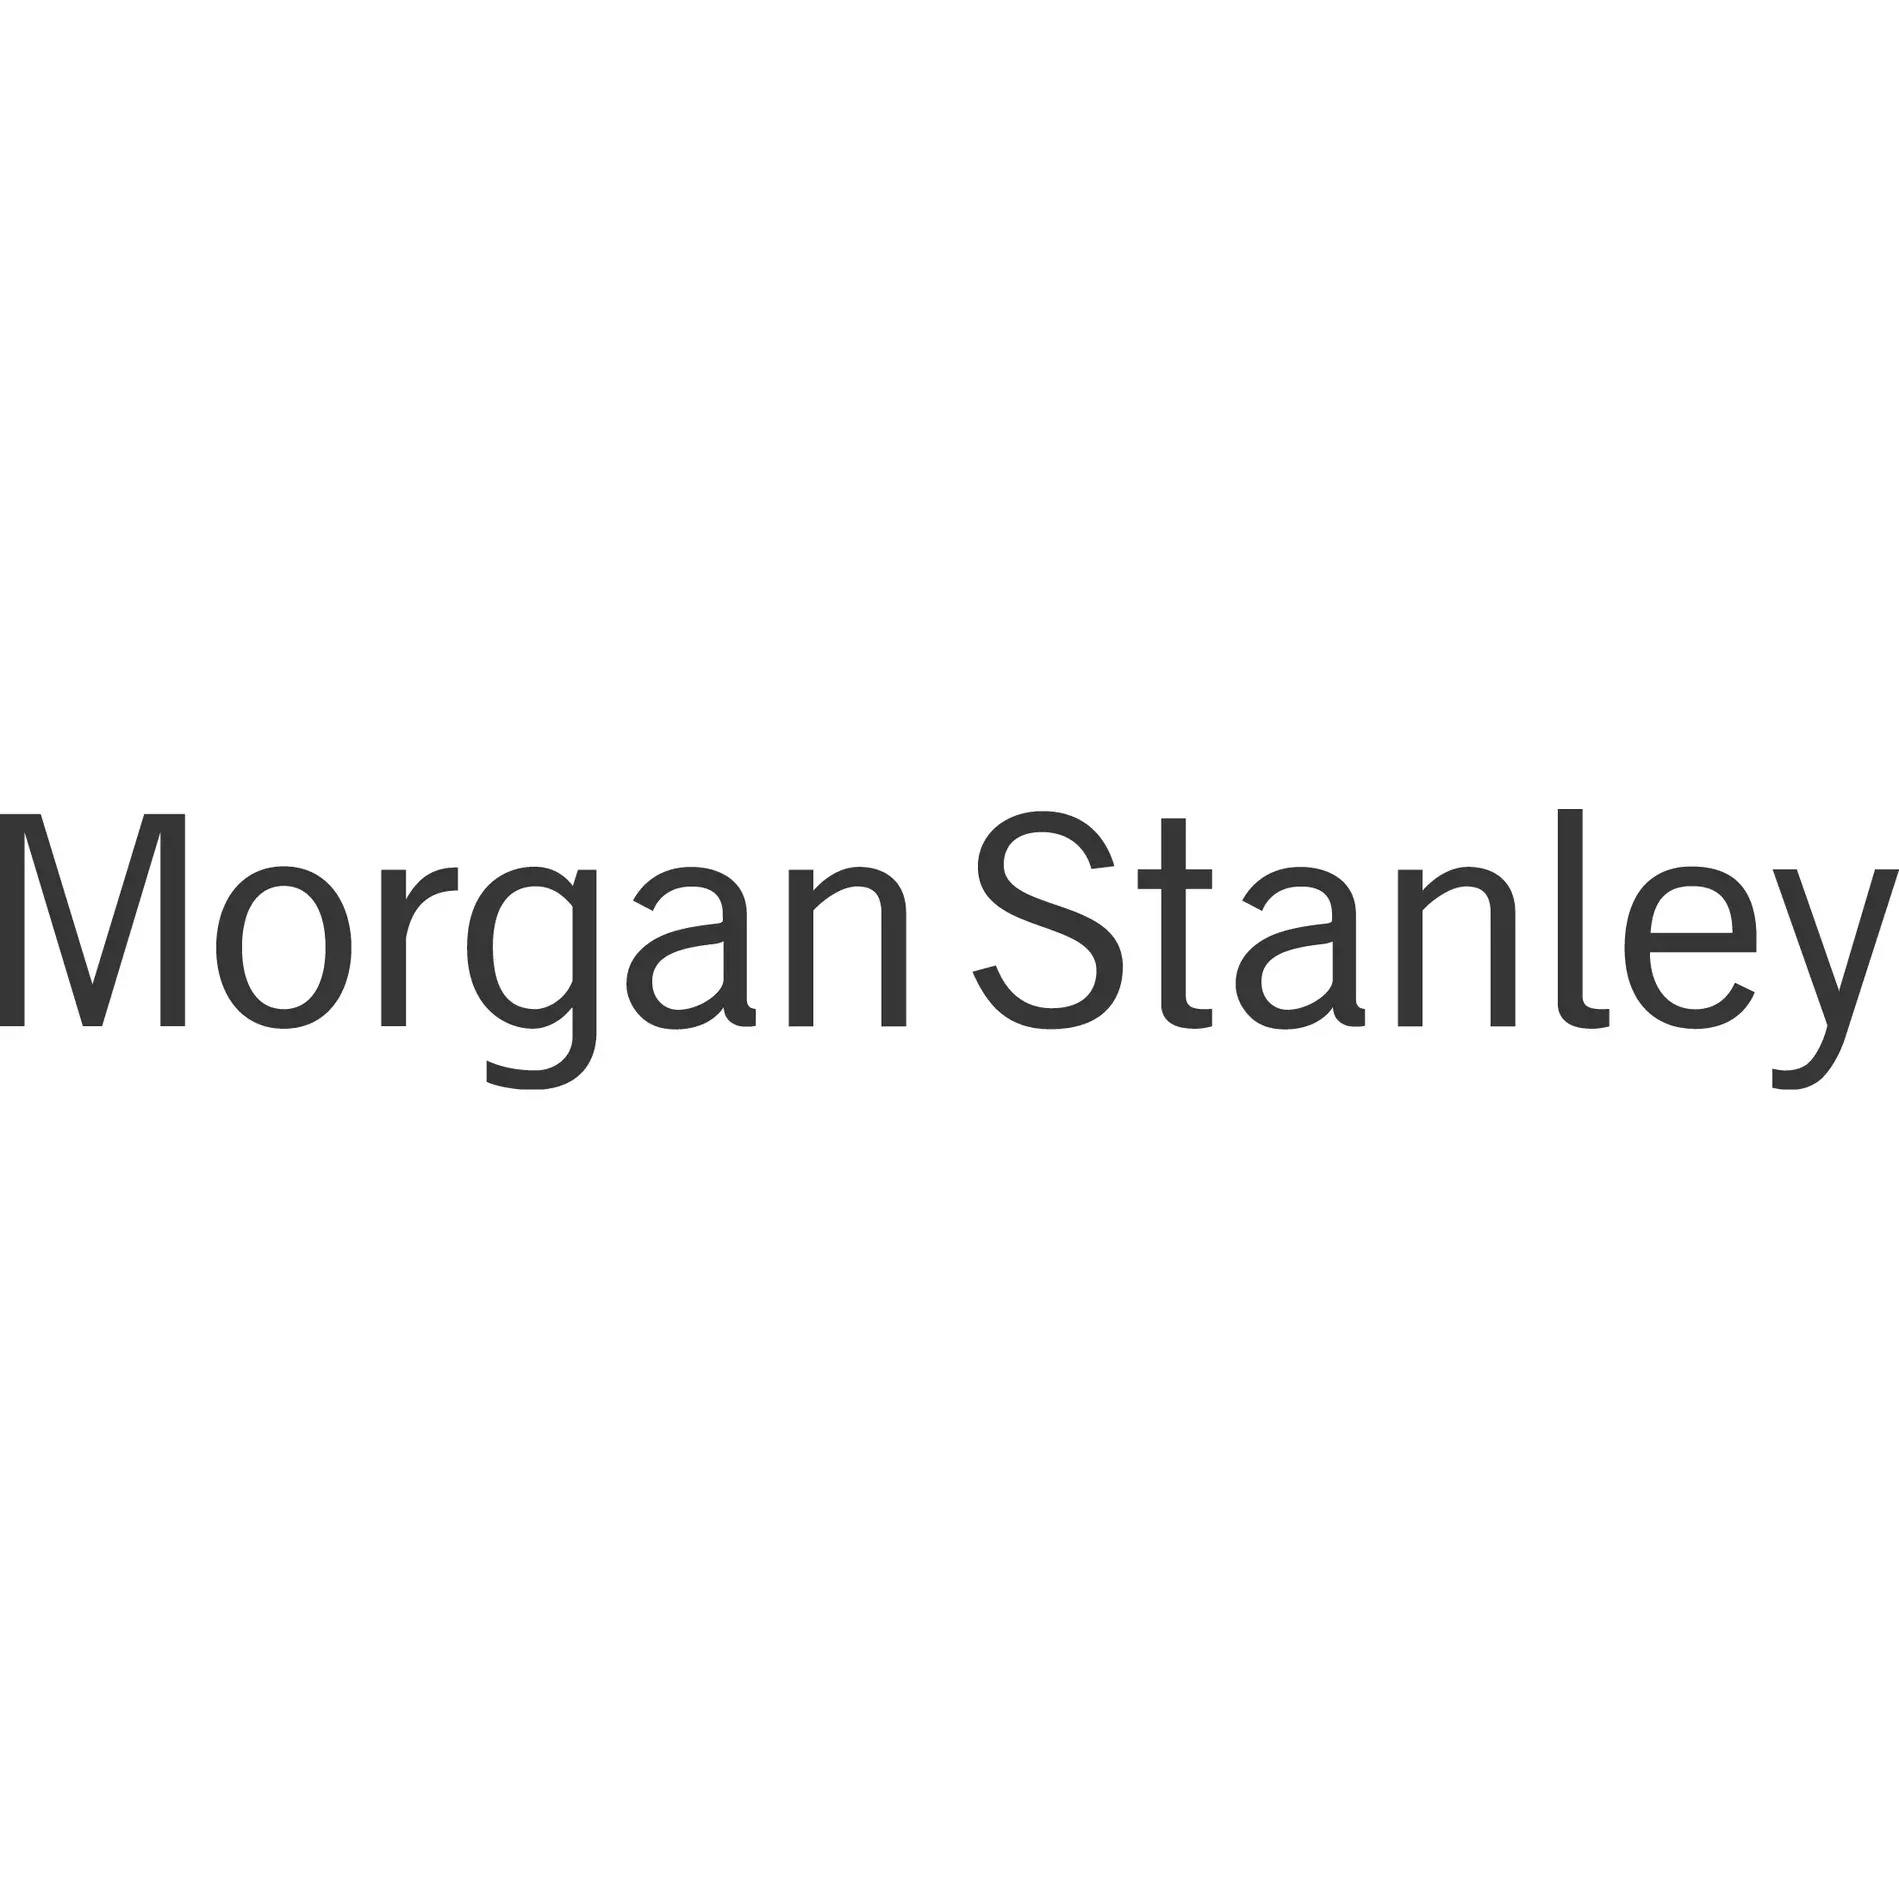 The Keystone Group South - Morgan Stanley | Financial Advisor in Atlanta,Georgia